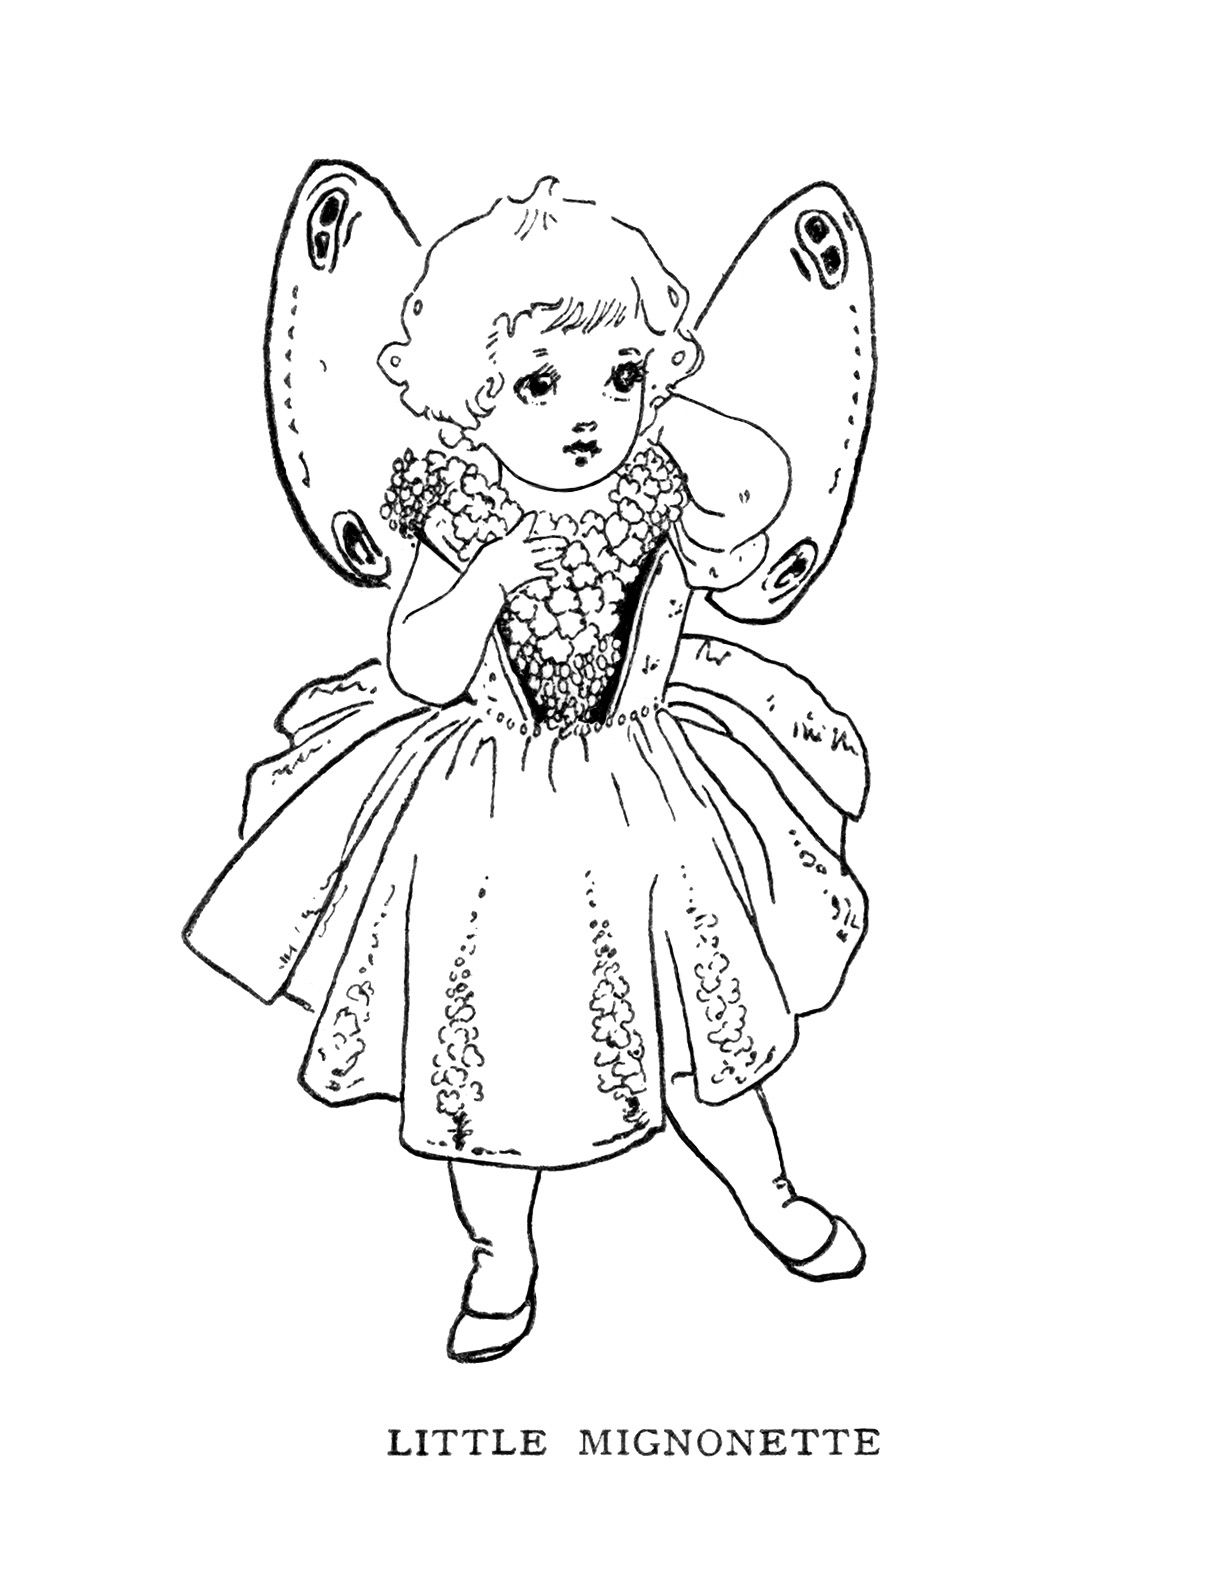 story book character coloring pages   Coloring for adults - Kleuren voor volwassenen   COLOURING ...